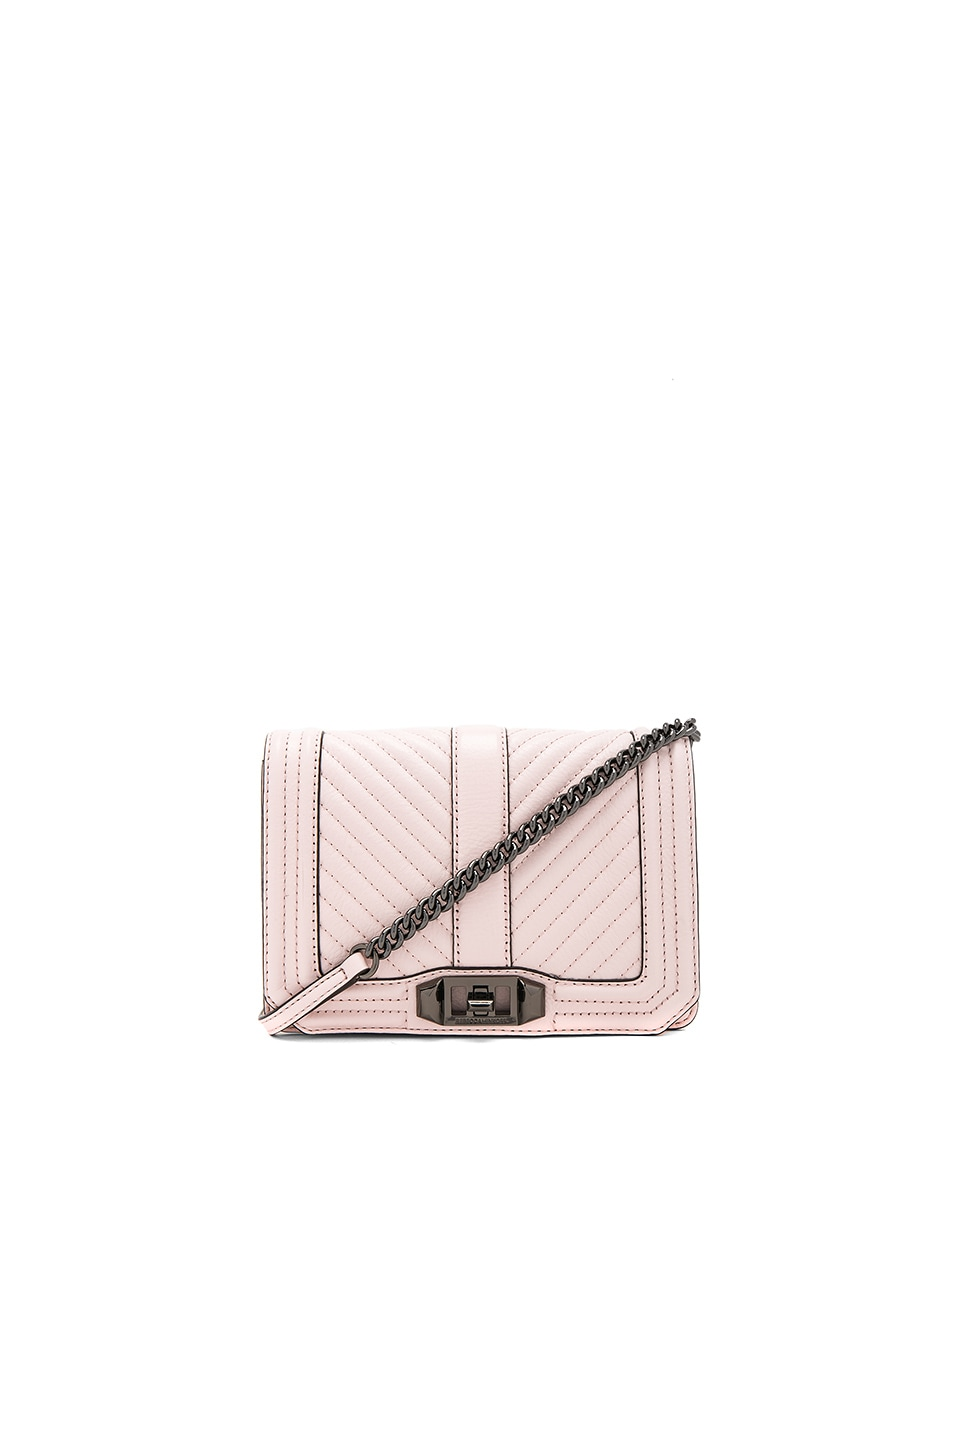 Rebecca Minkoff Chevron Quilted Small Love Crossbody Bag in Soft Blush